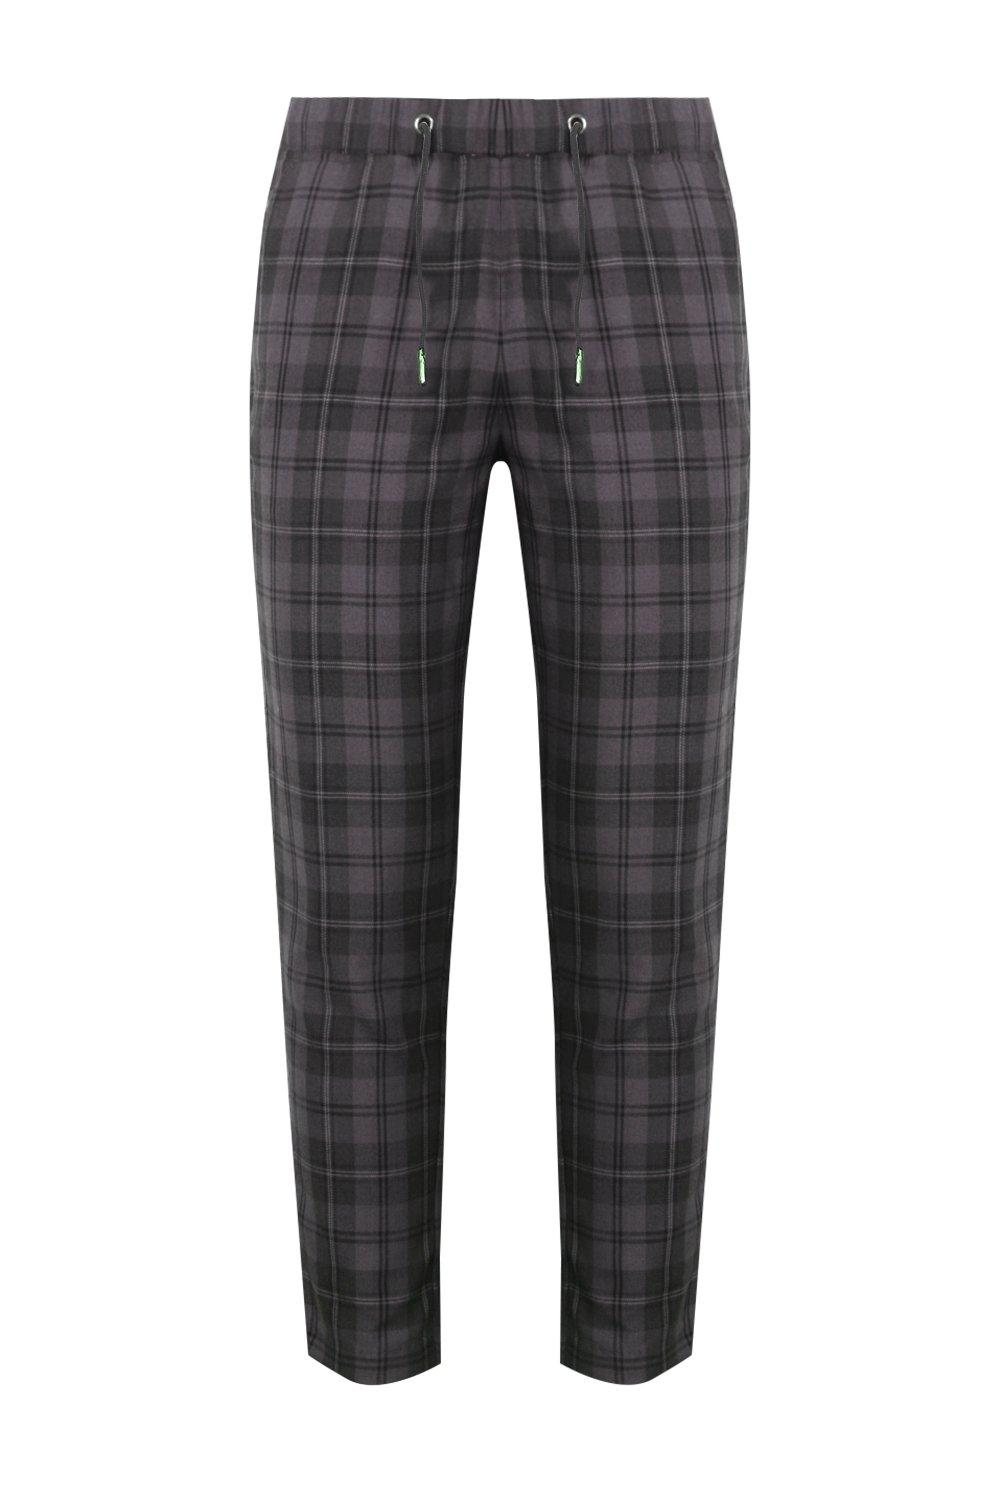 boohooMAN Dele Grey Check Woven Jogger With Elasticated Waist